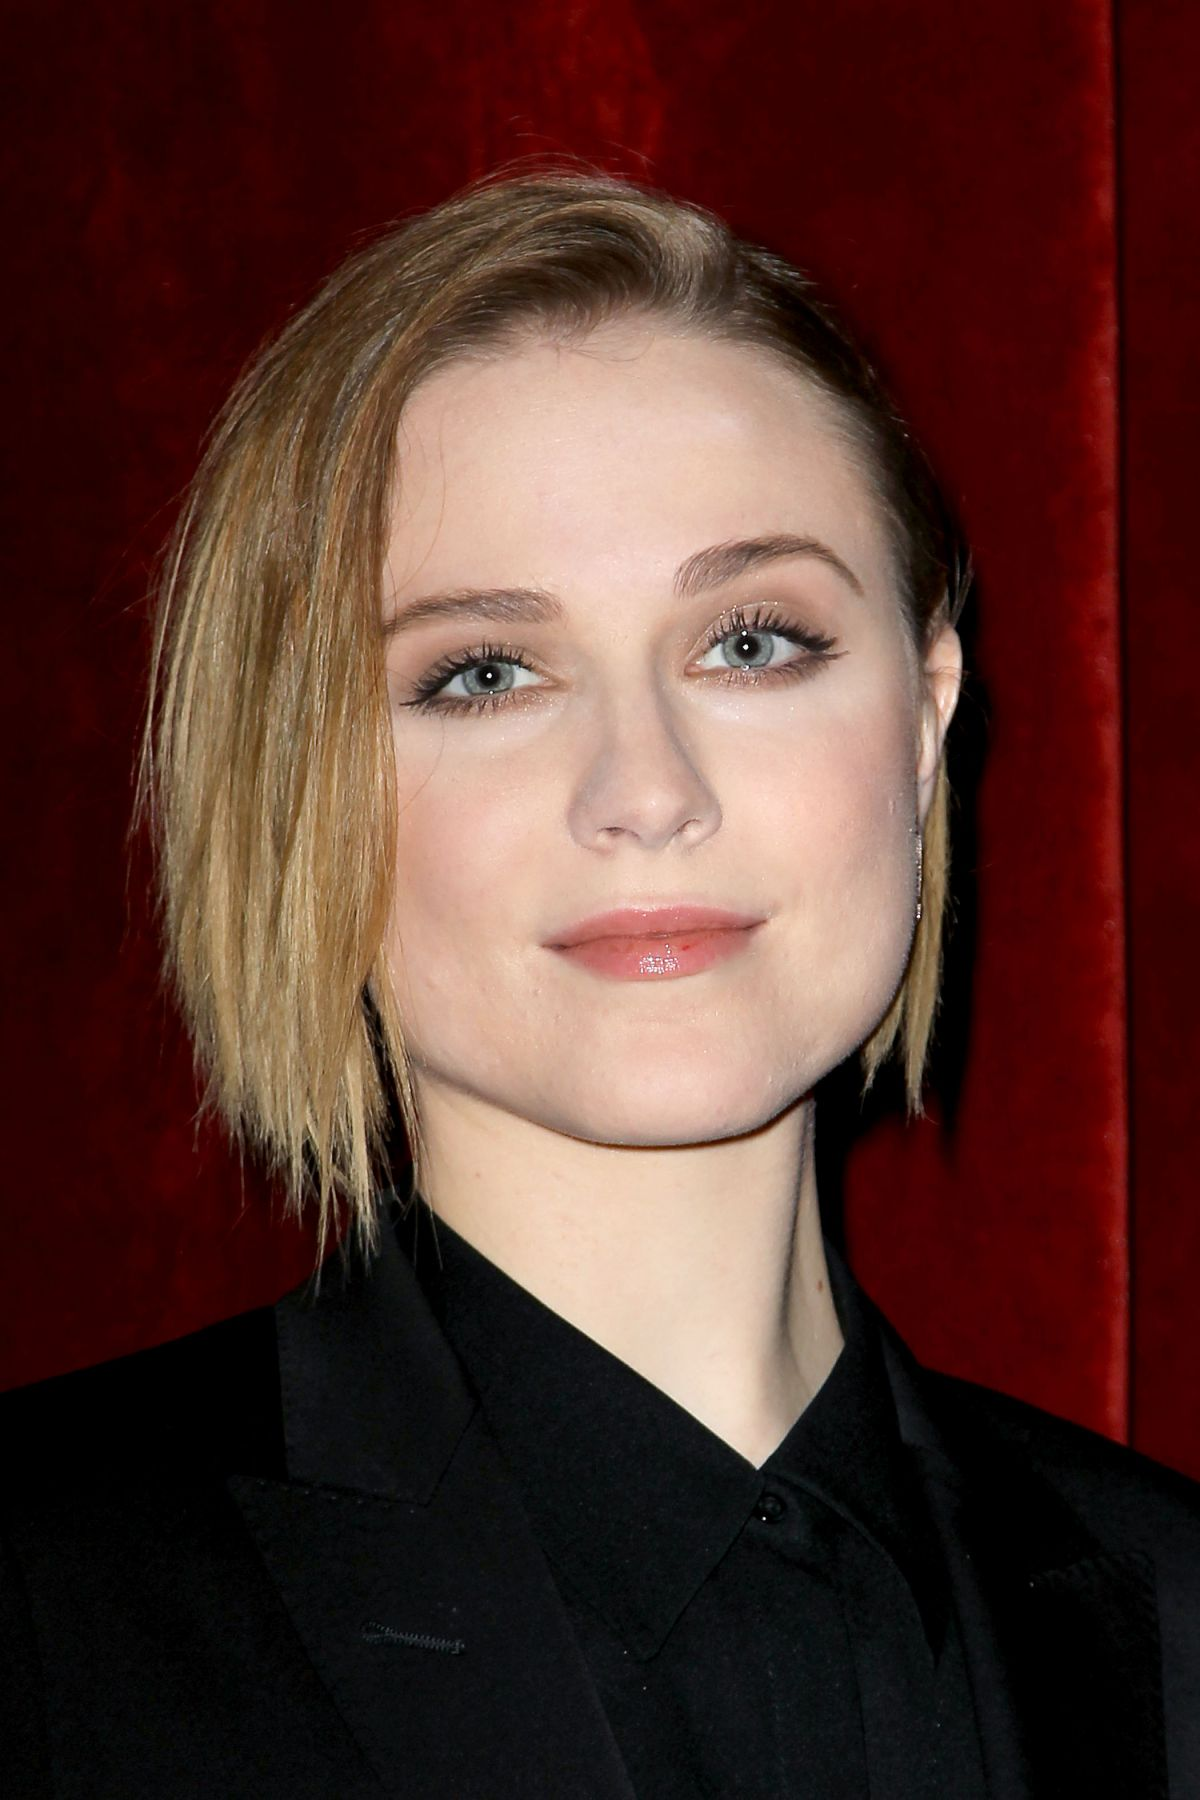 EVAN RACHEL WOOD at AOL's Build Speakers Series in New York ... Evan Rachel Wood